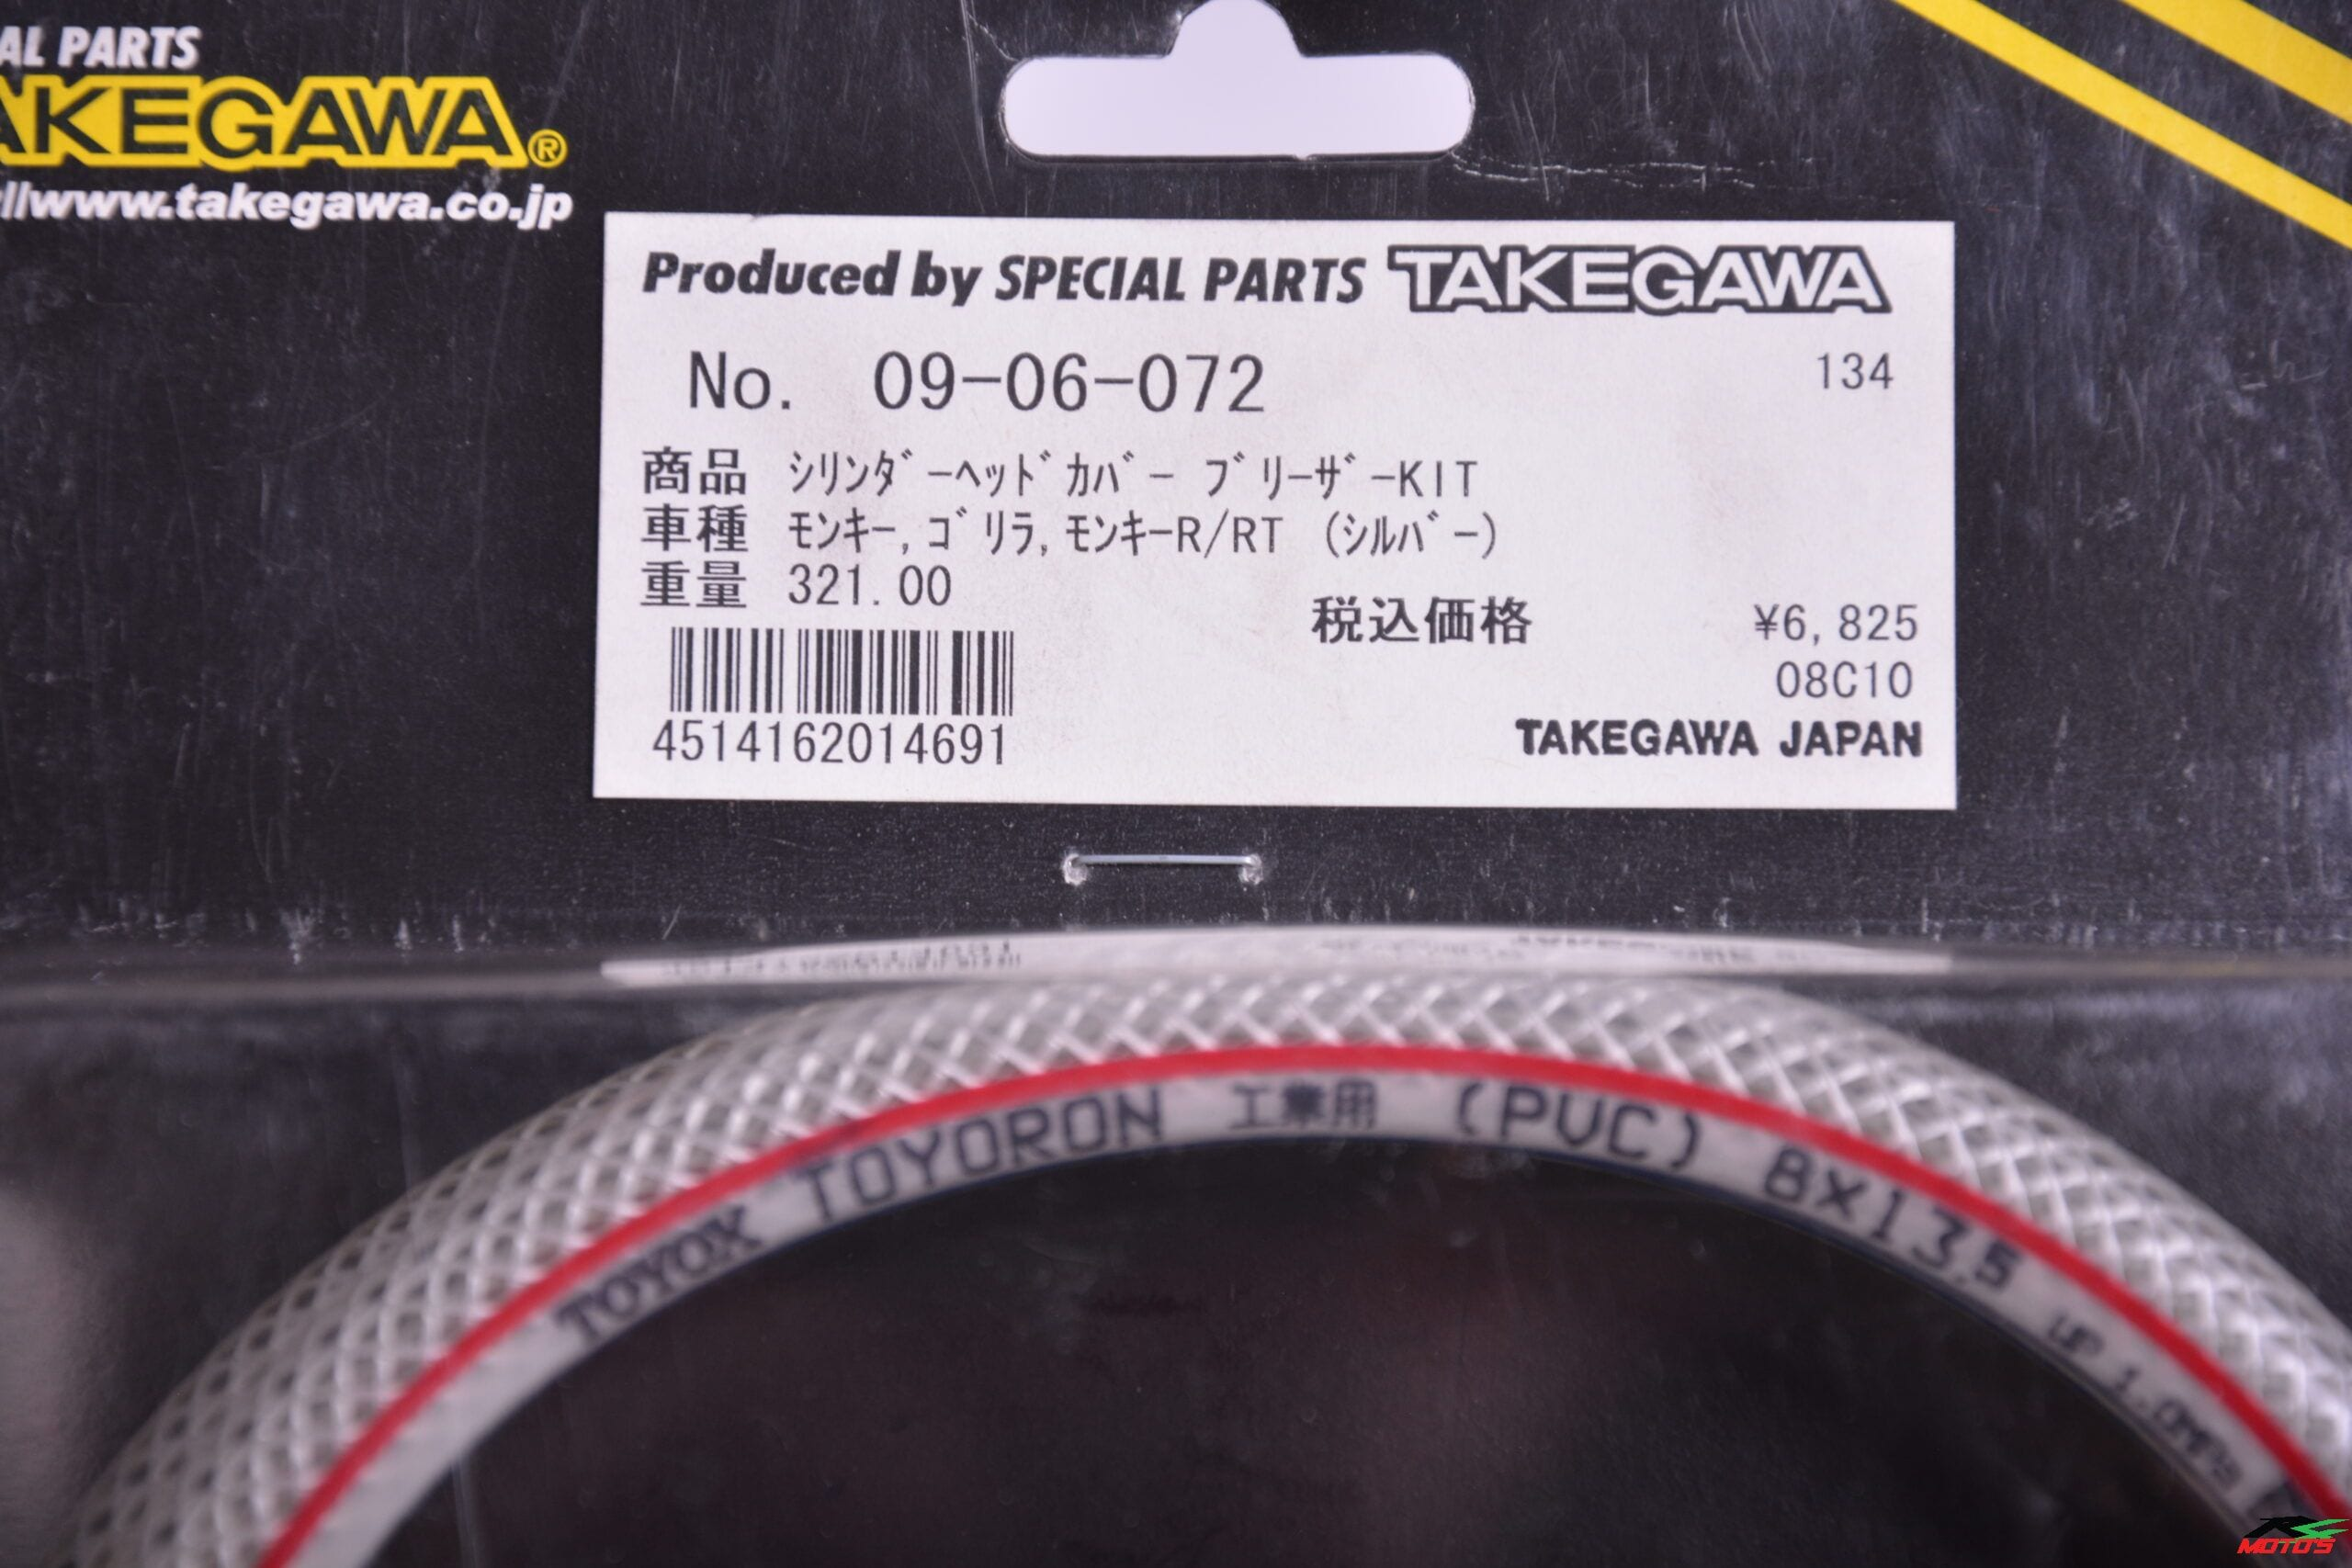 Takegawa Cylinder head front cover with breather pipe